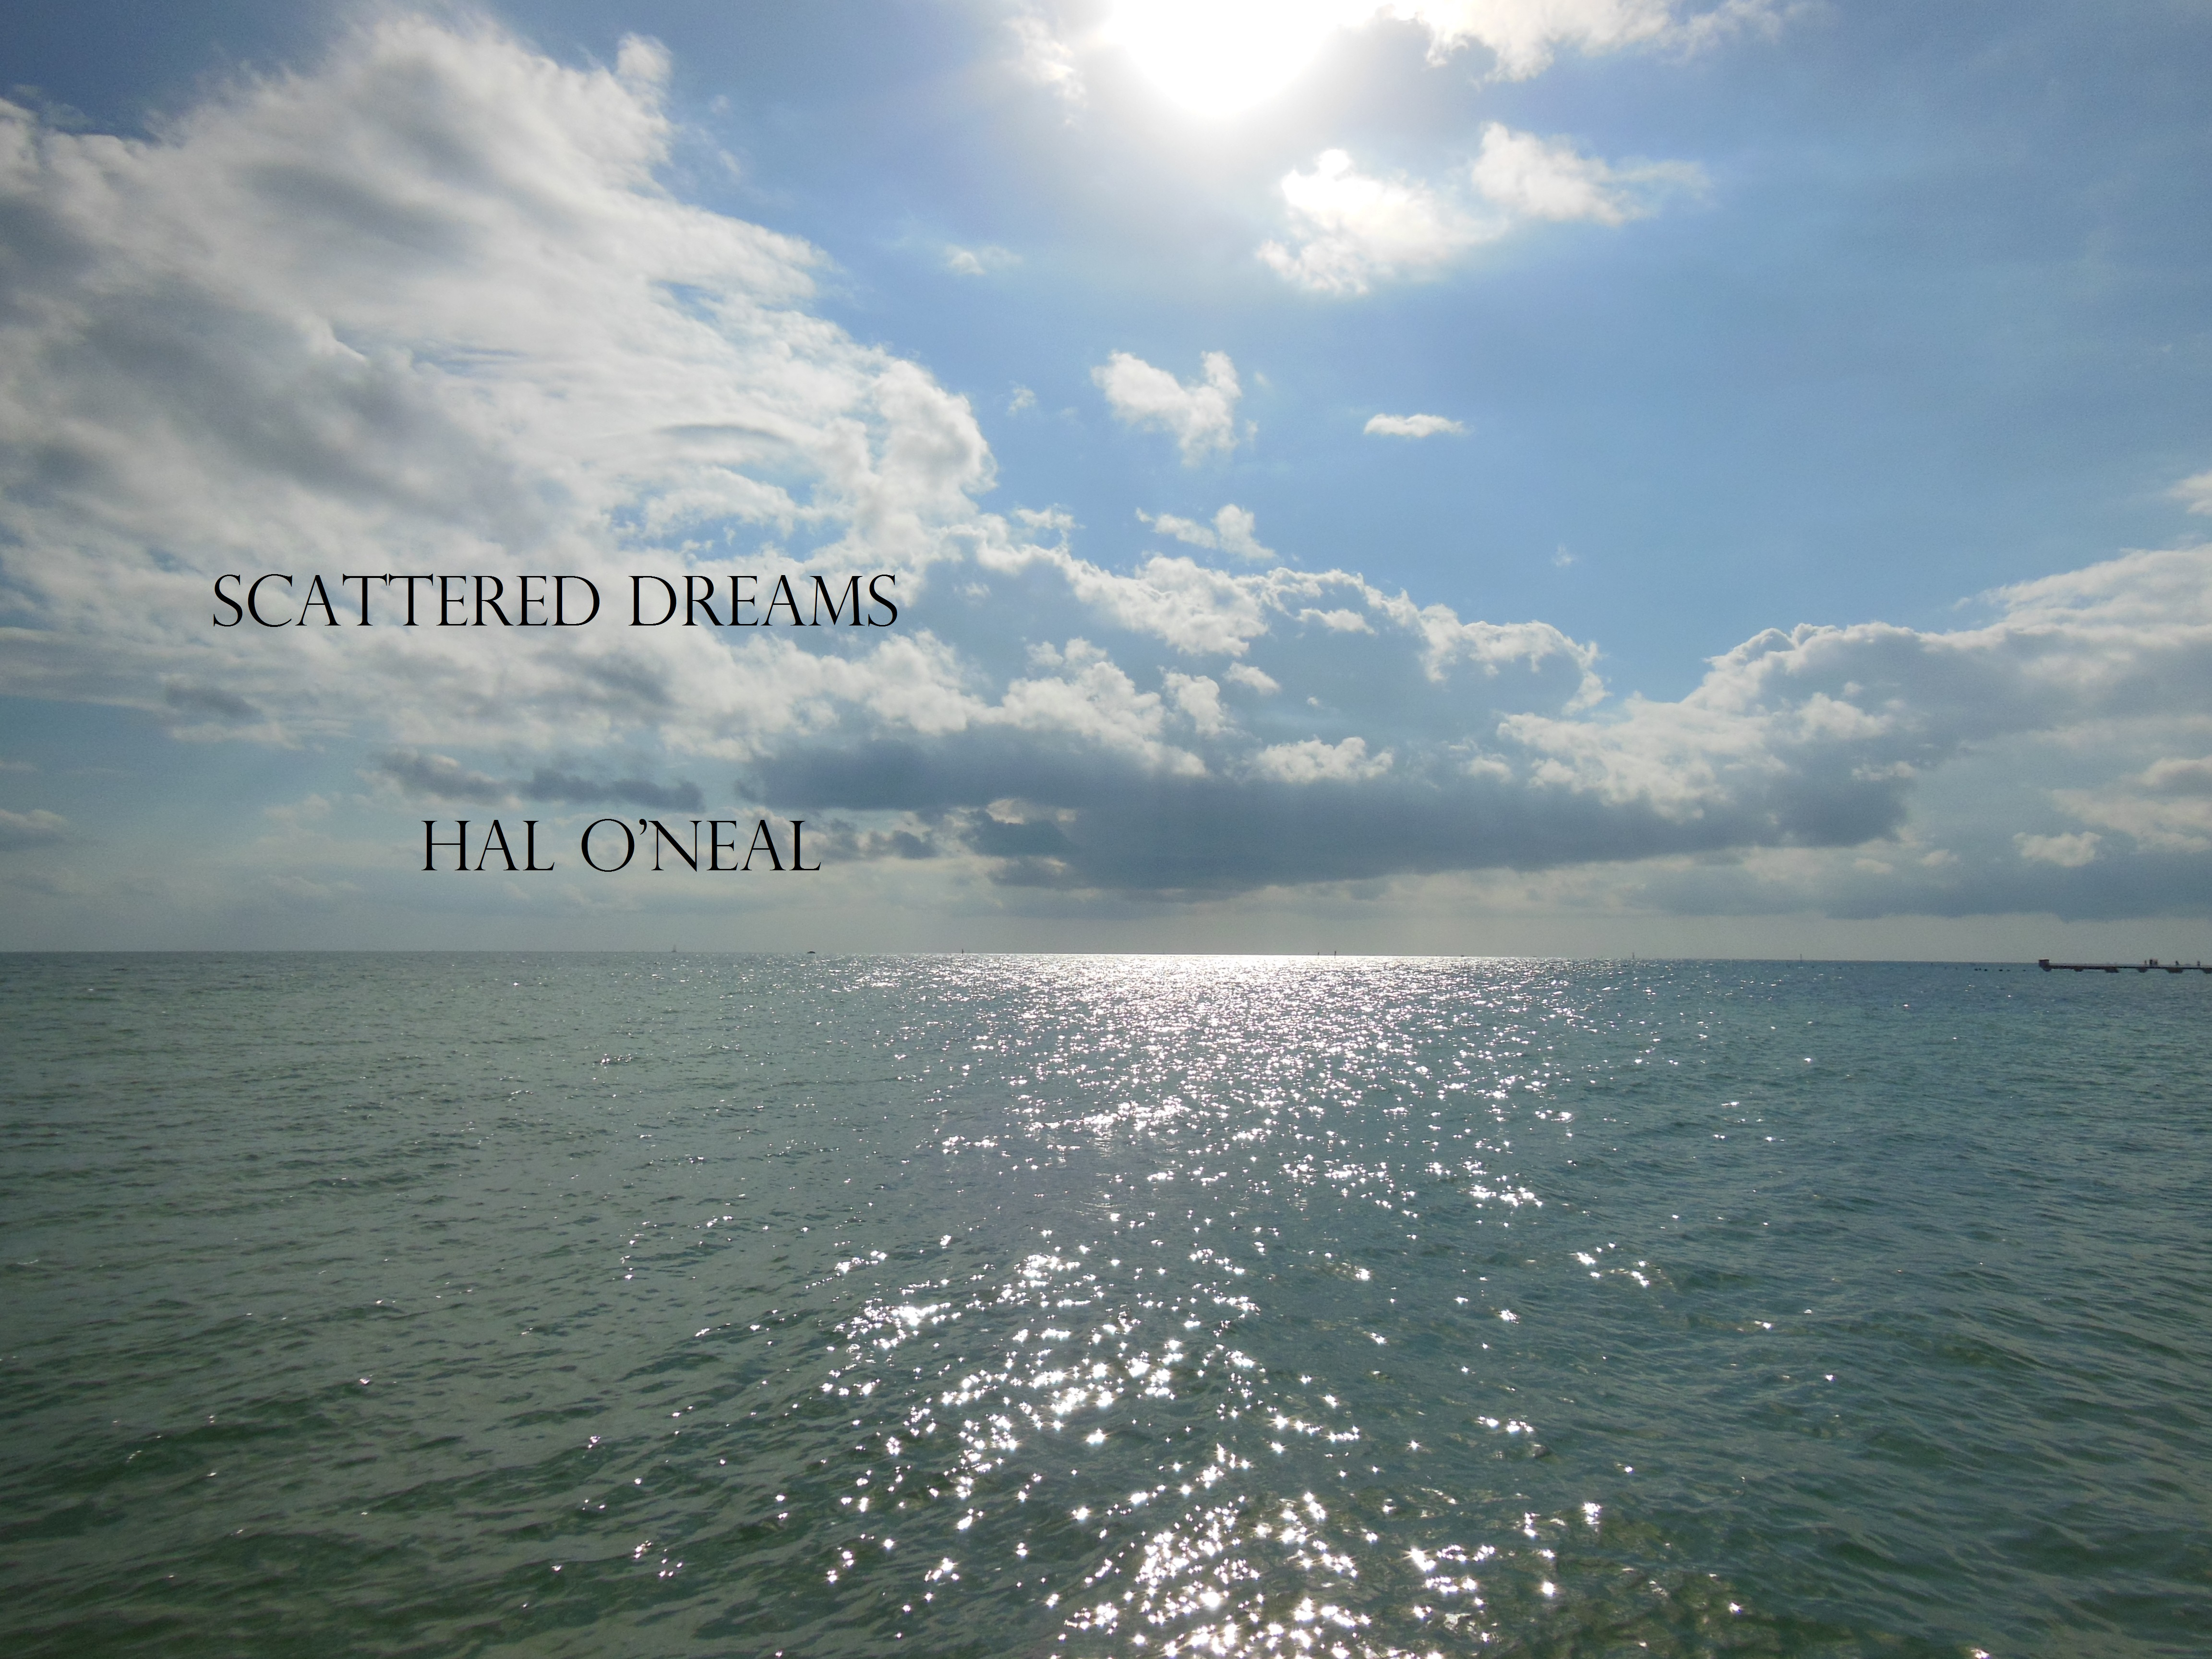 Hal O'neal - Scattered Dreams